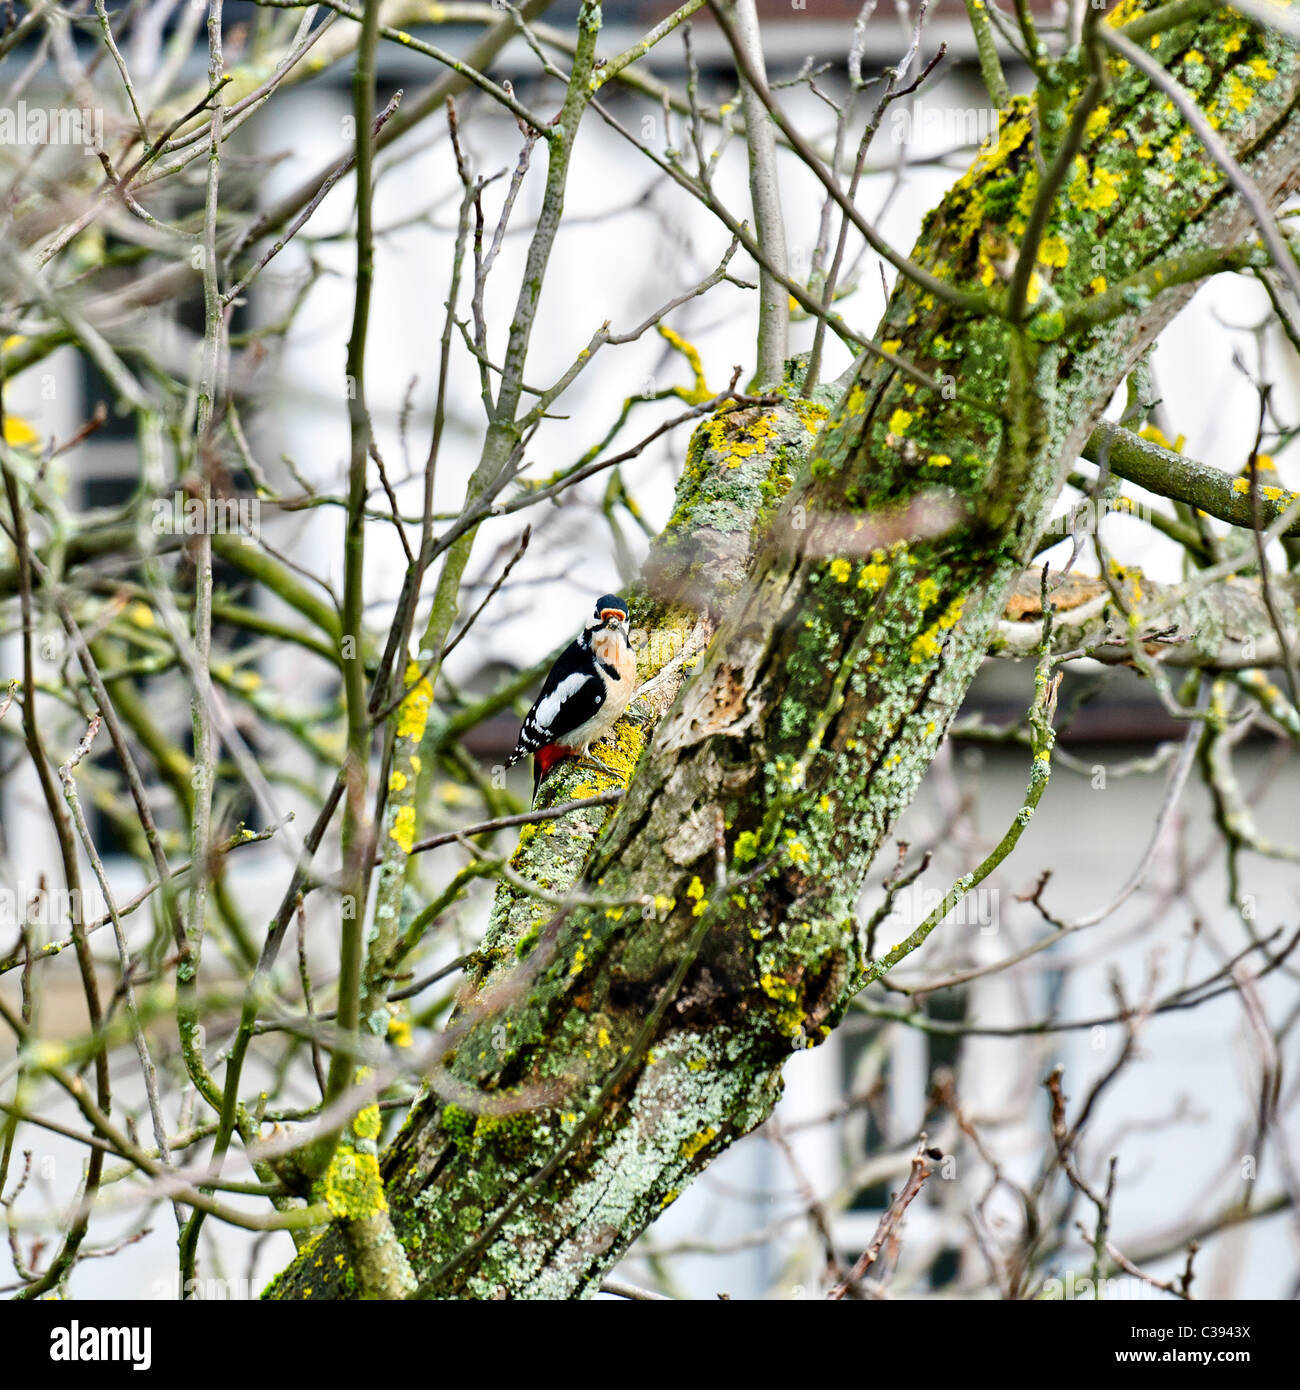 Lesser spotted woodpecker sitting on nuts tree branch, Dendrocopos minor, Germany, Europe - Stock Image